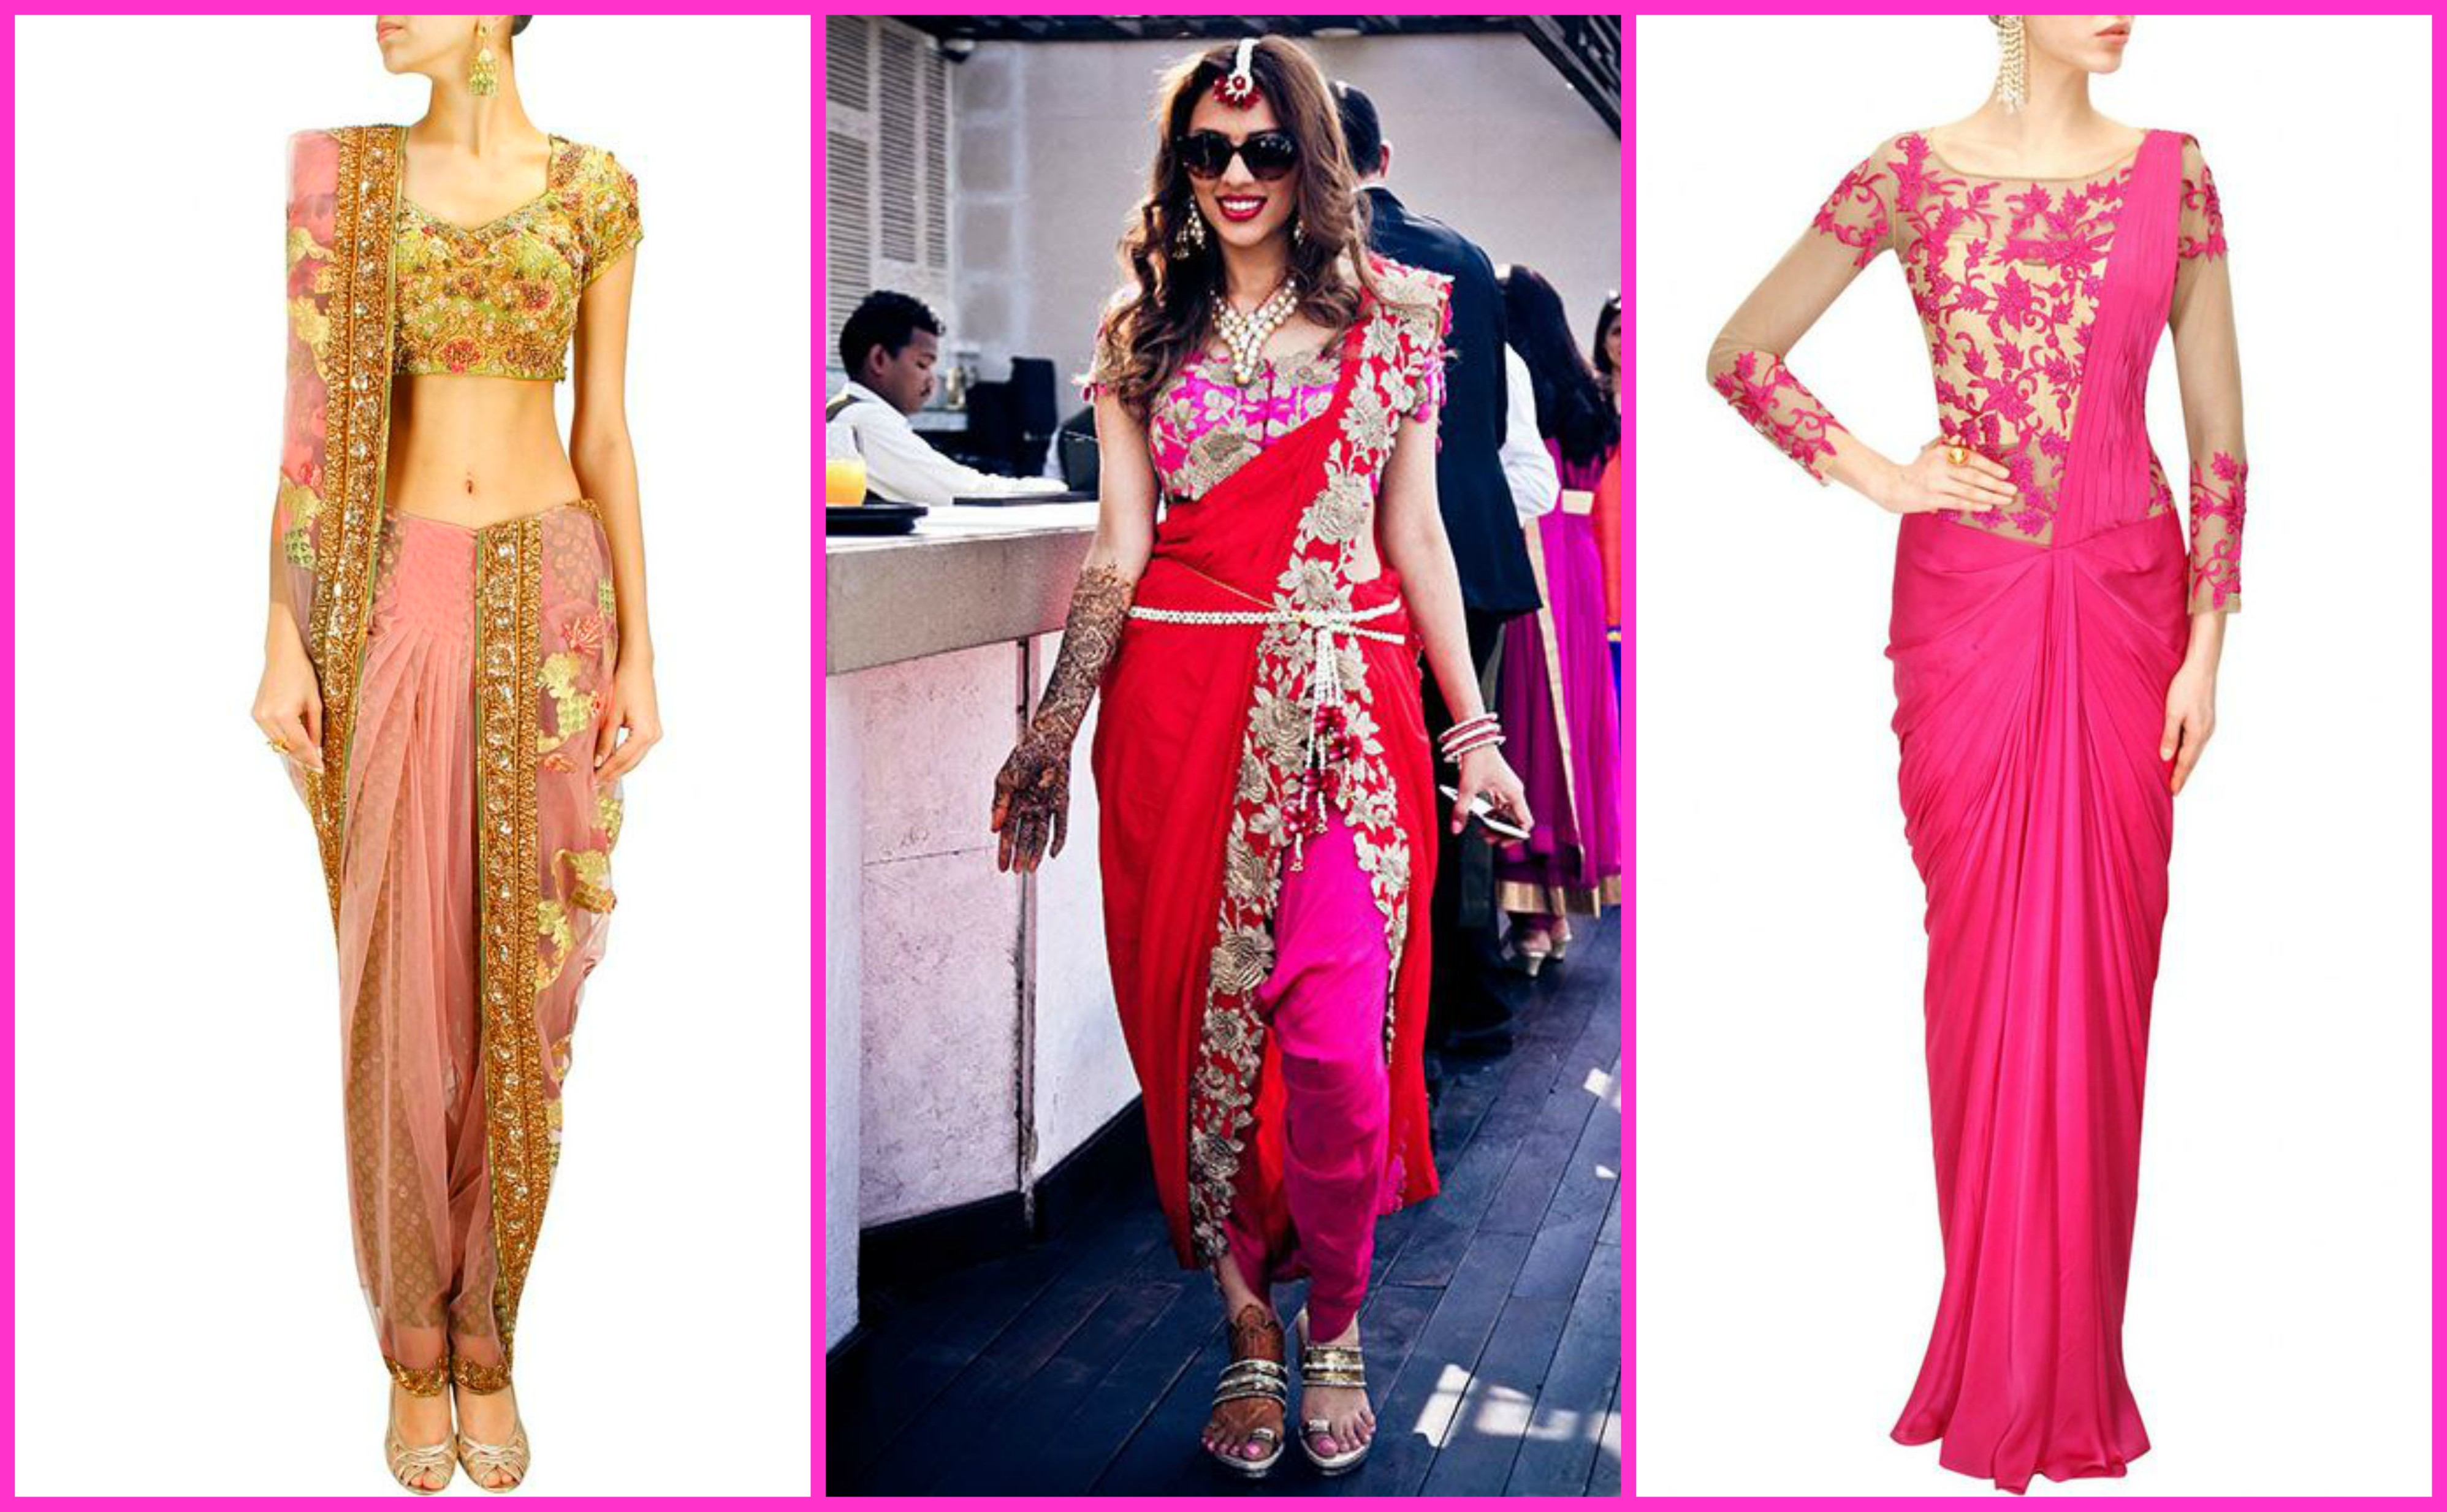 d9cdbee1674a2 Ladies Pink Clothes - Indian Wedding Wear Must Have — G3+ Fashion